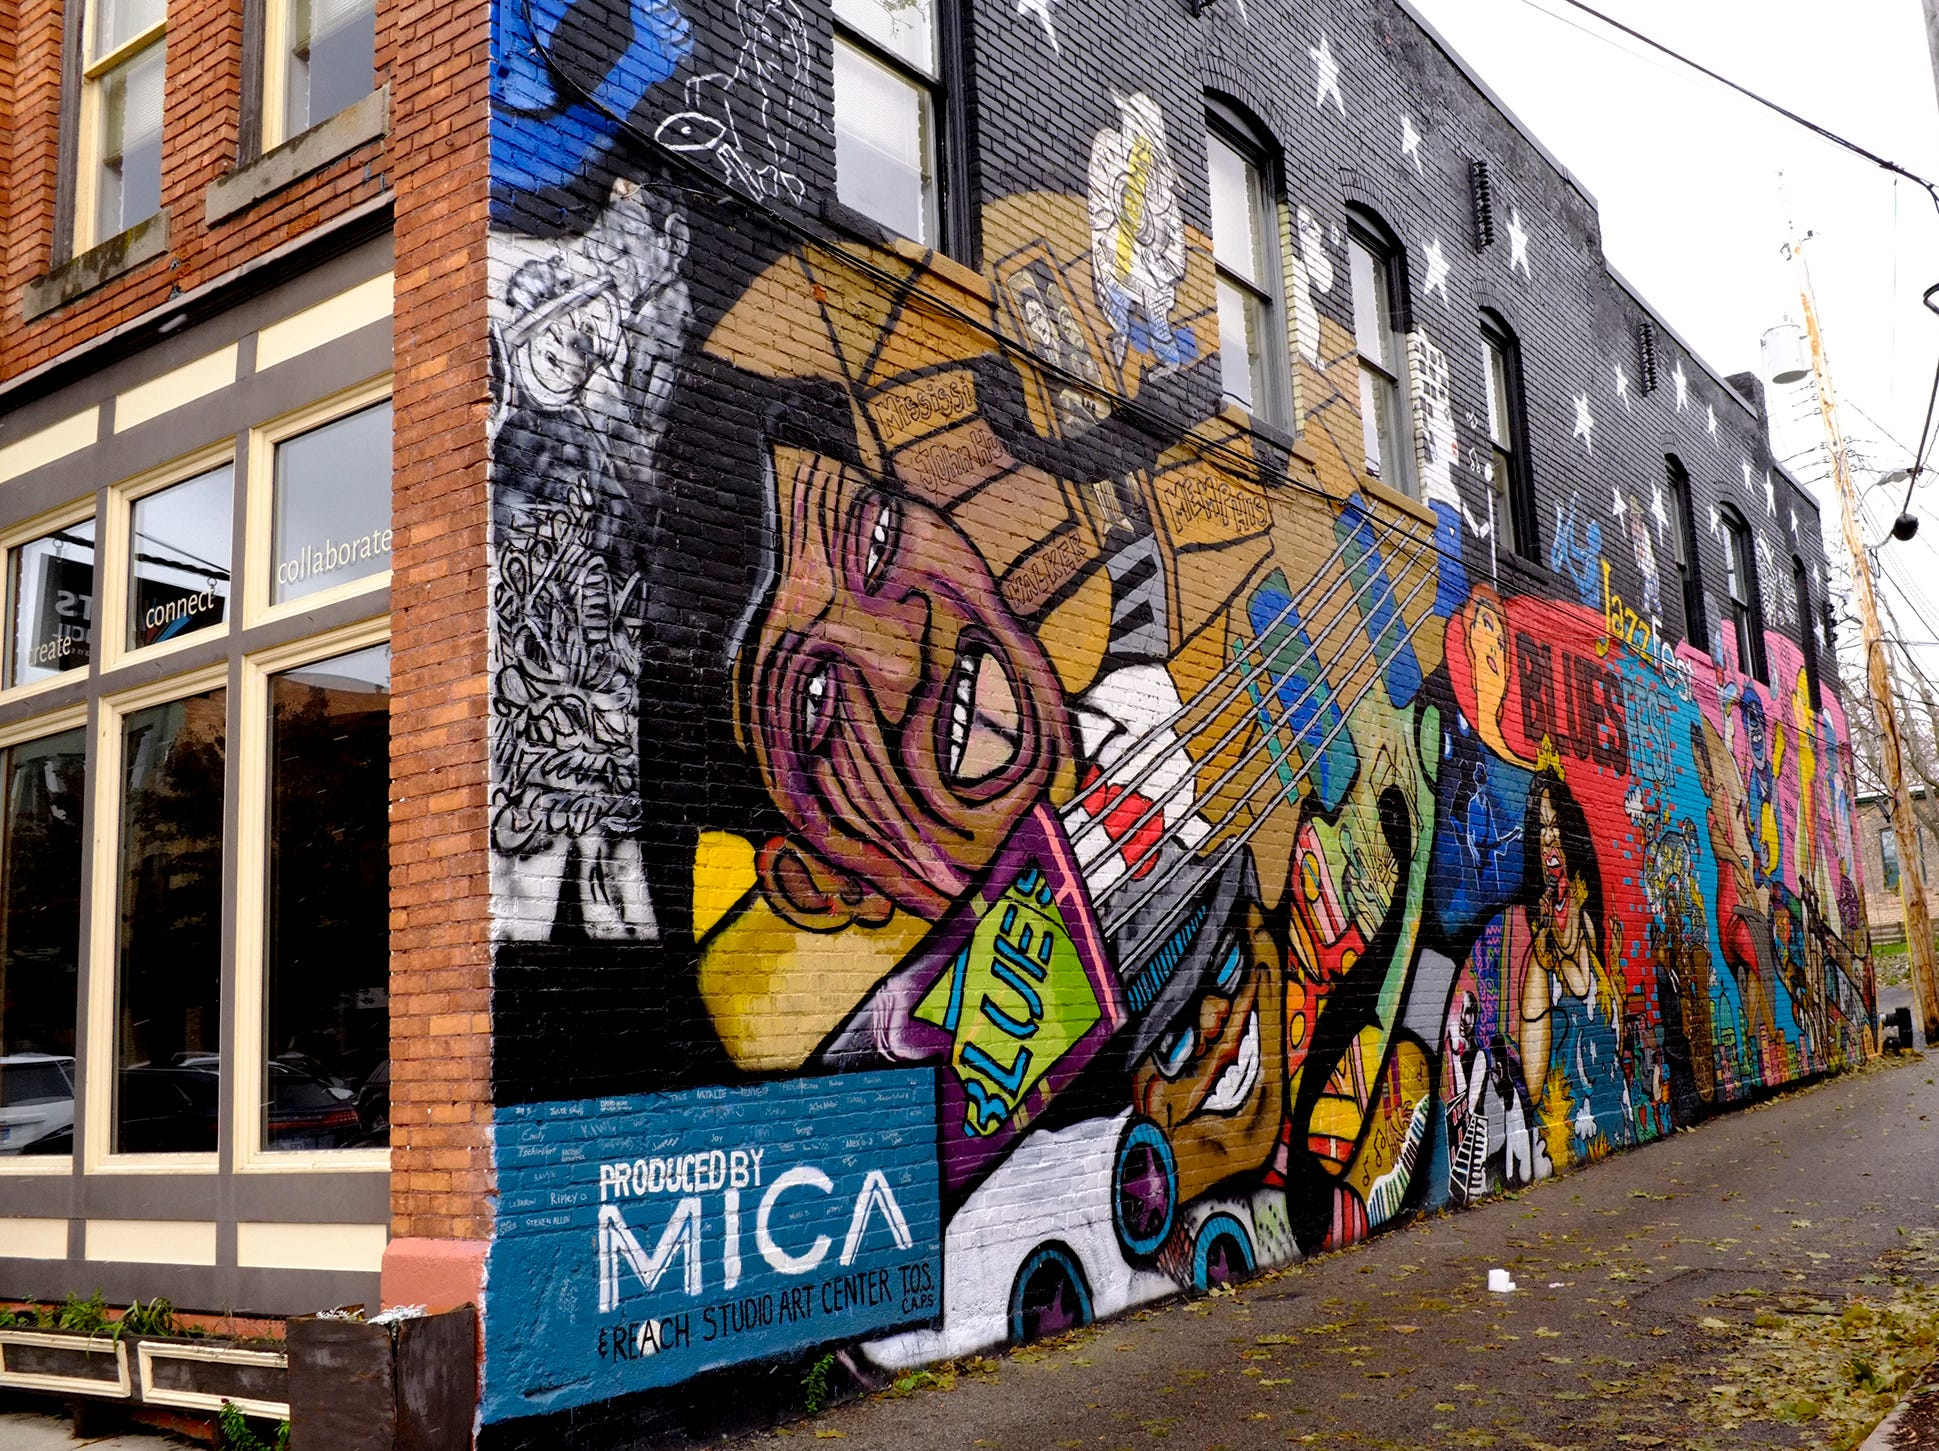 This prominent mural by MICA and Reach Studio Art Center is behind the 300 block of E. Cesar Chavez Avenue and Turner Street.